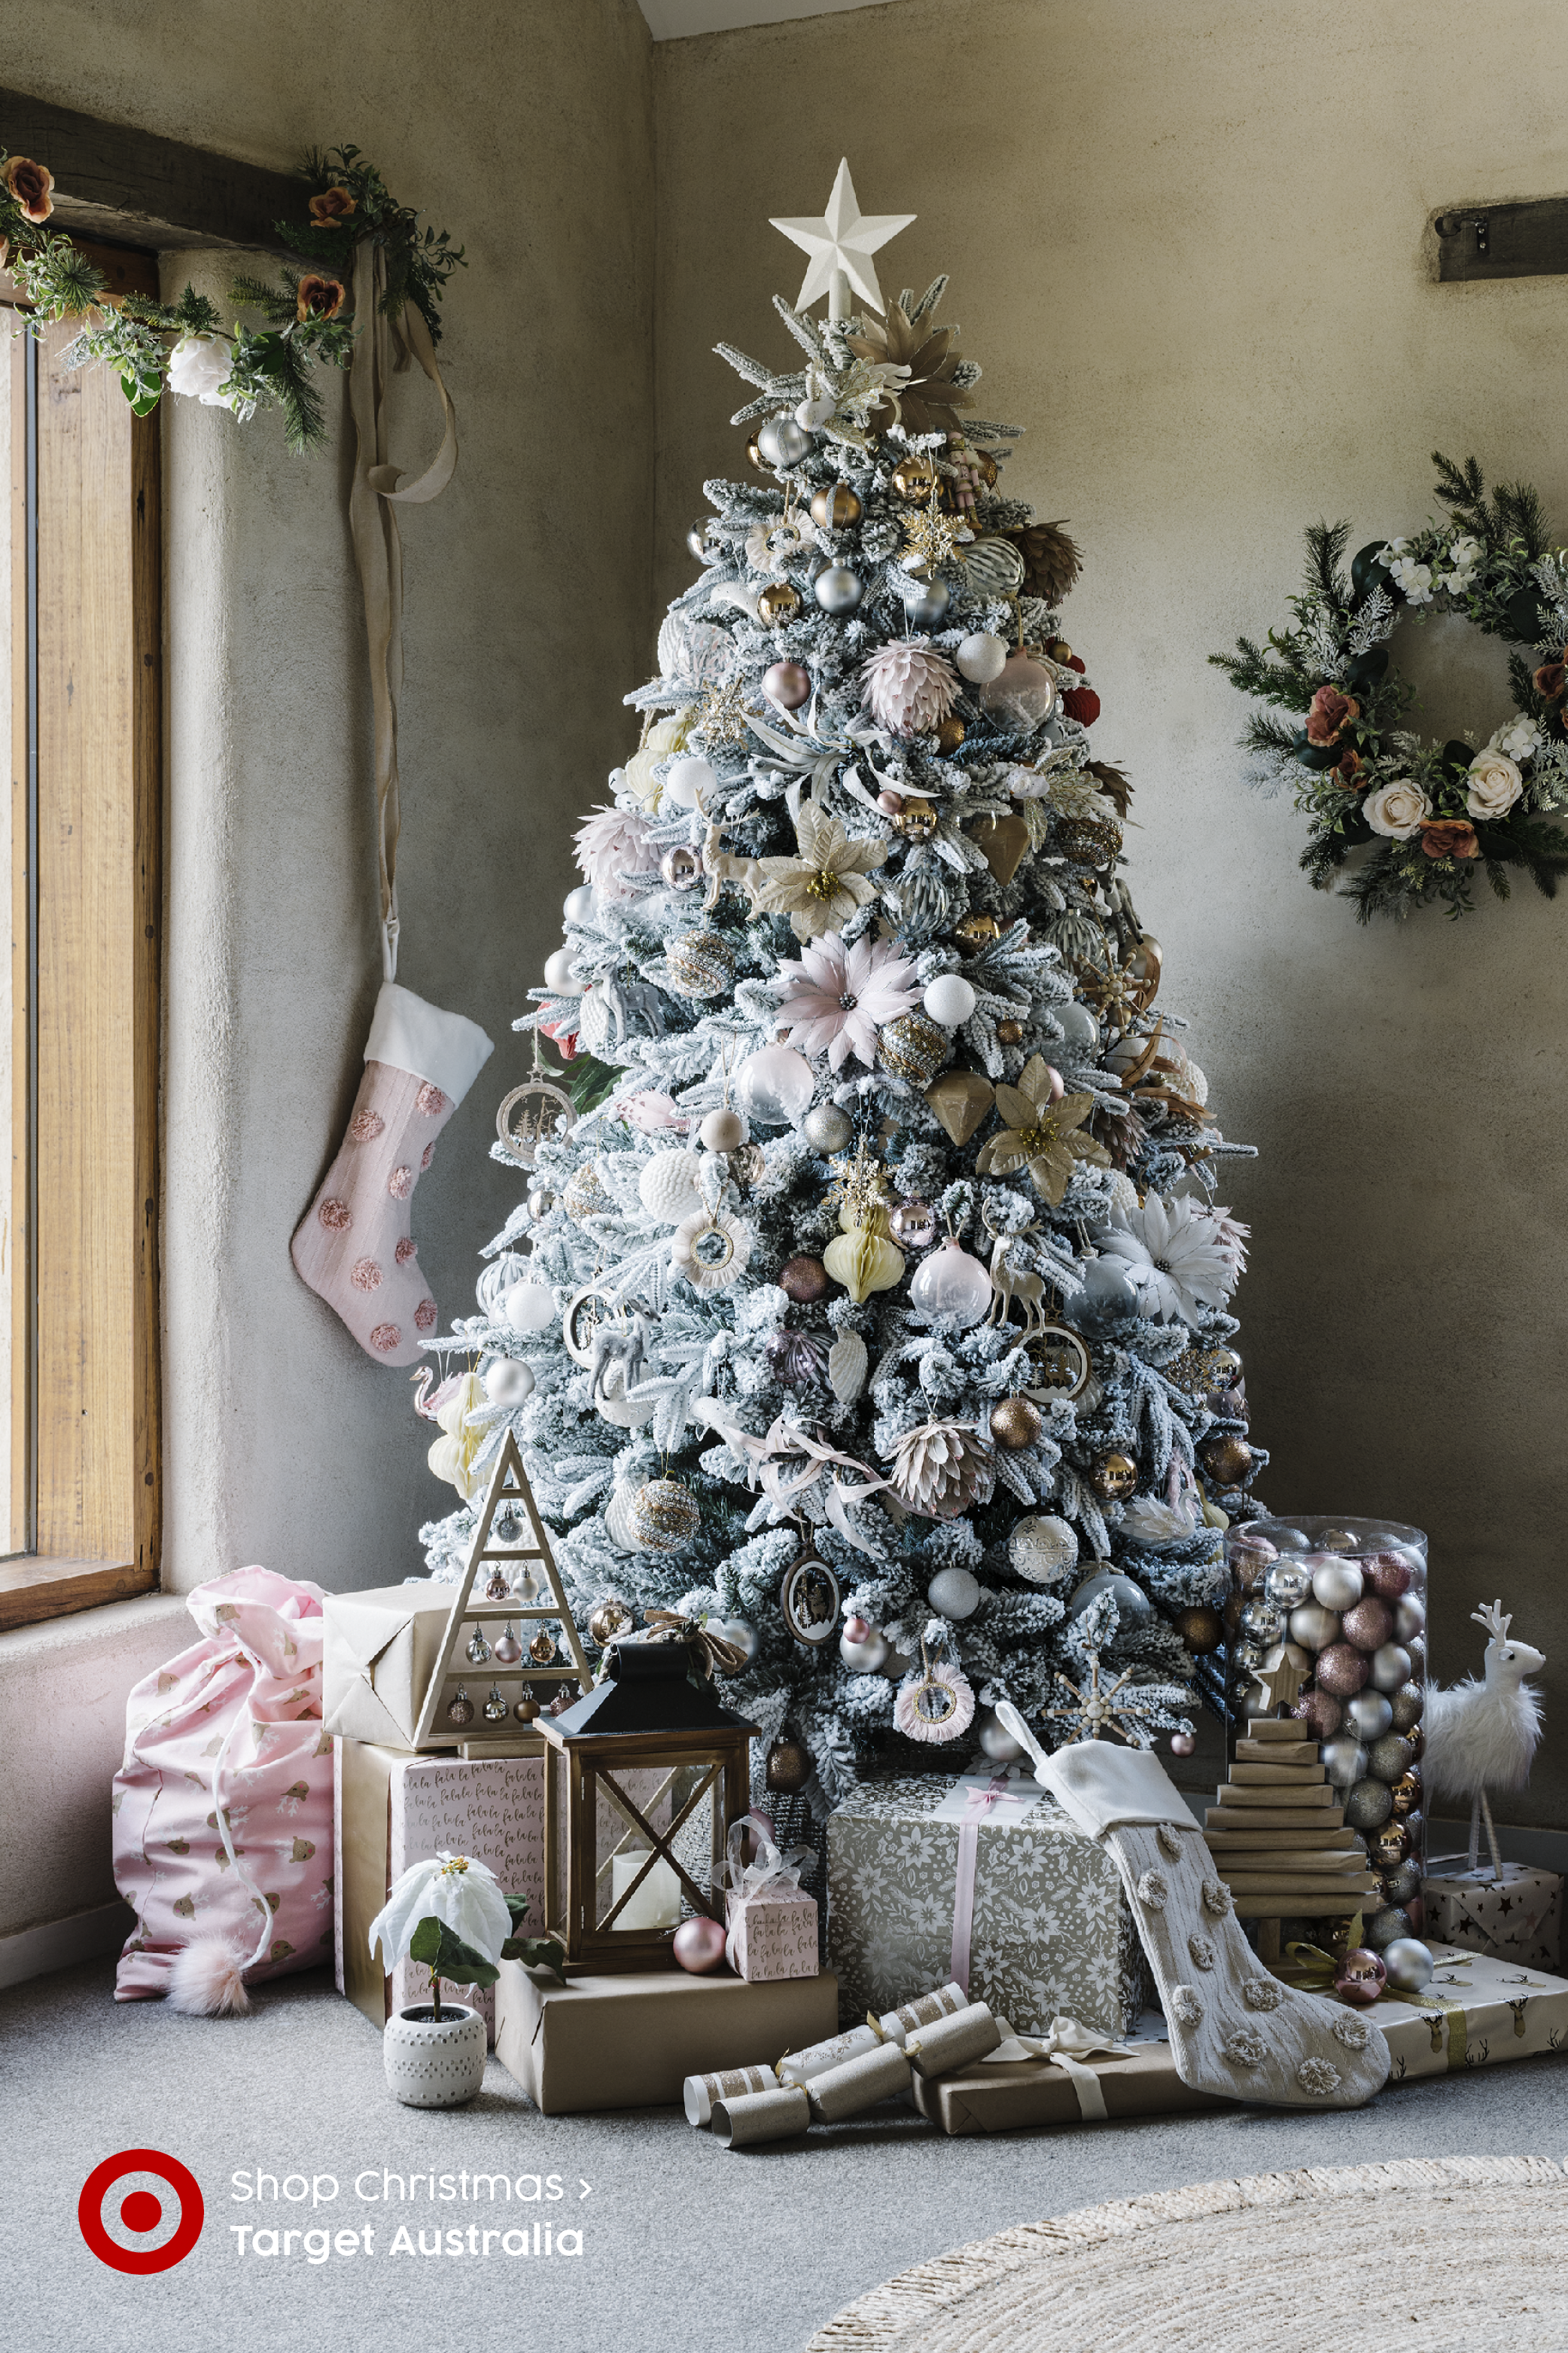 Unearthed Christmas Made Better In 2020 Holiday Decor Christmas Glam Christmas Tree Pink Christmas Decorations